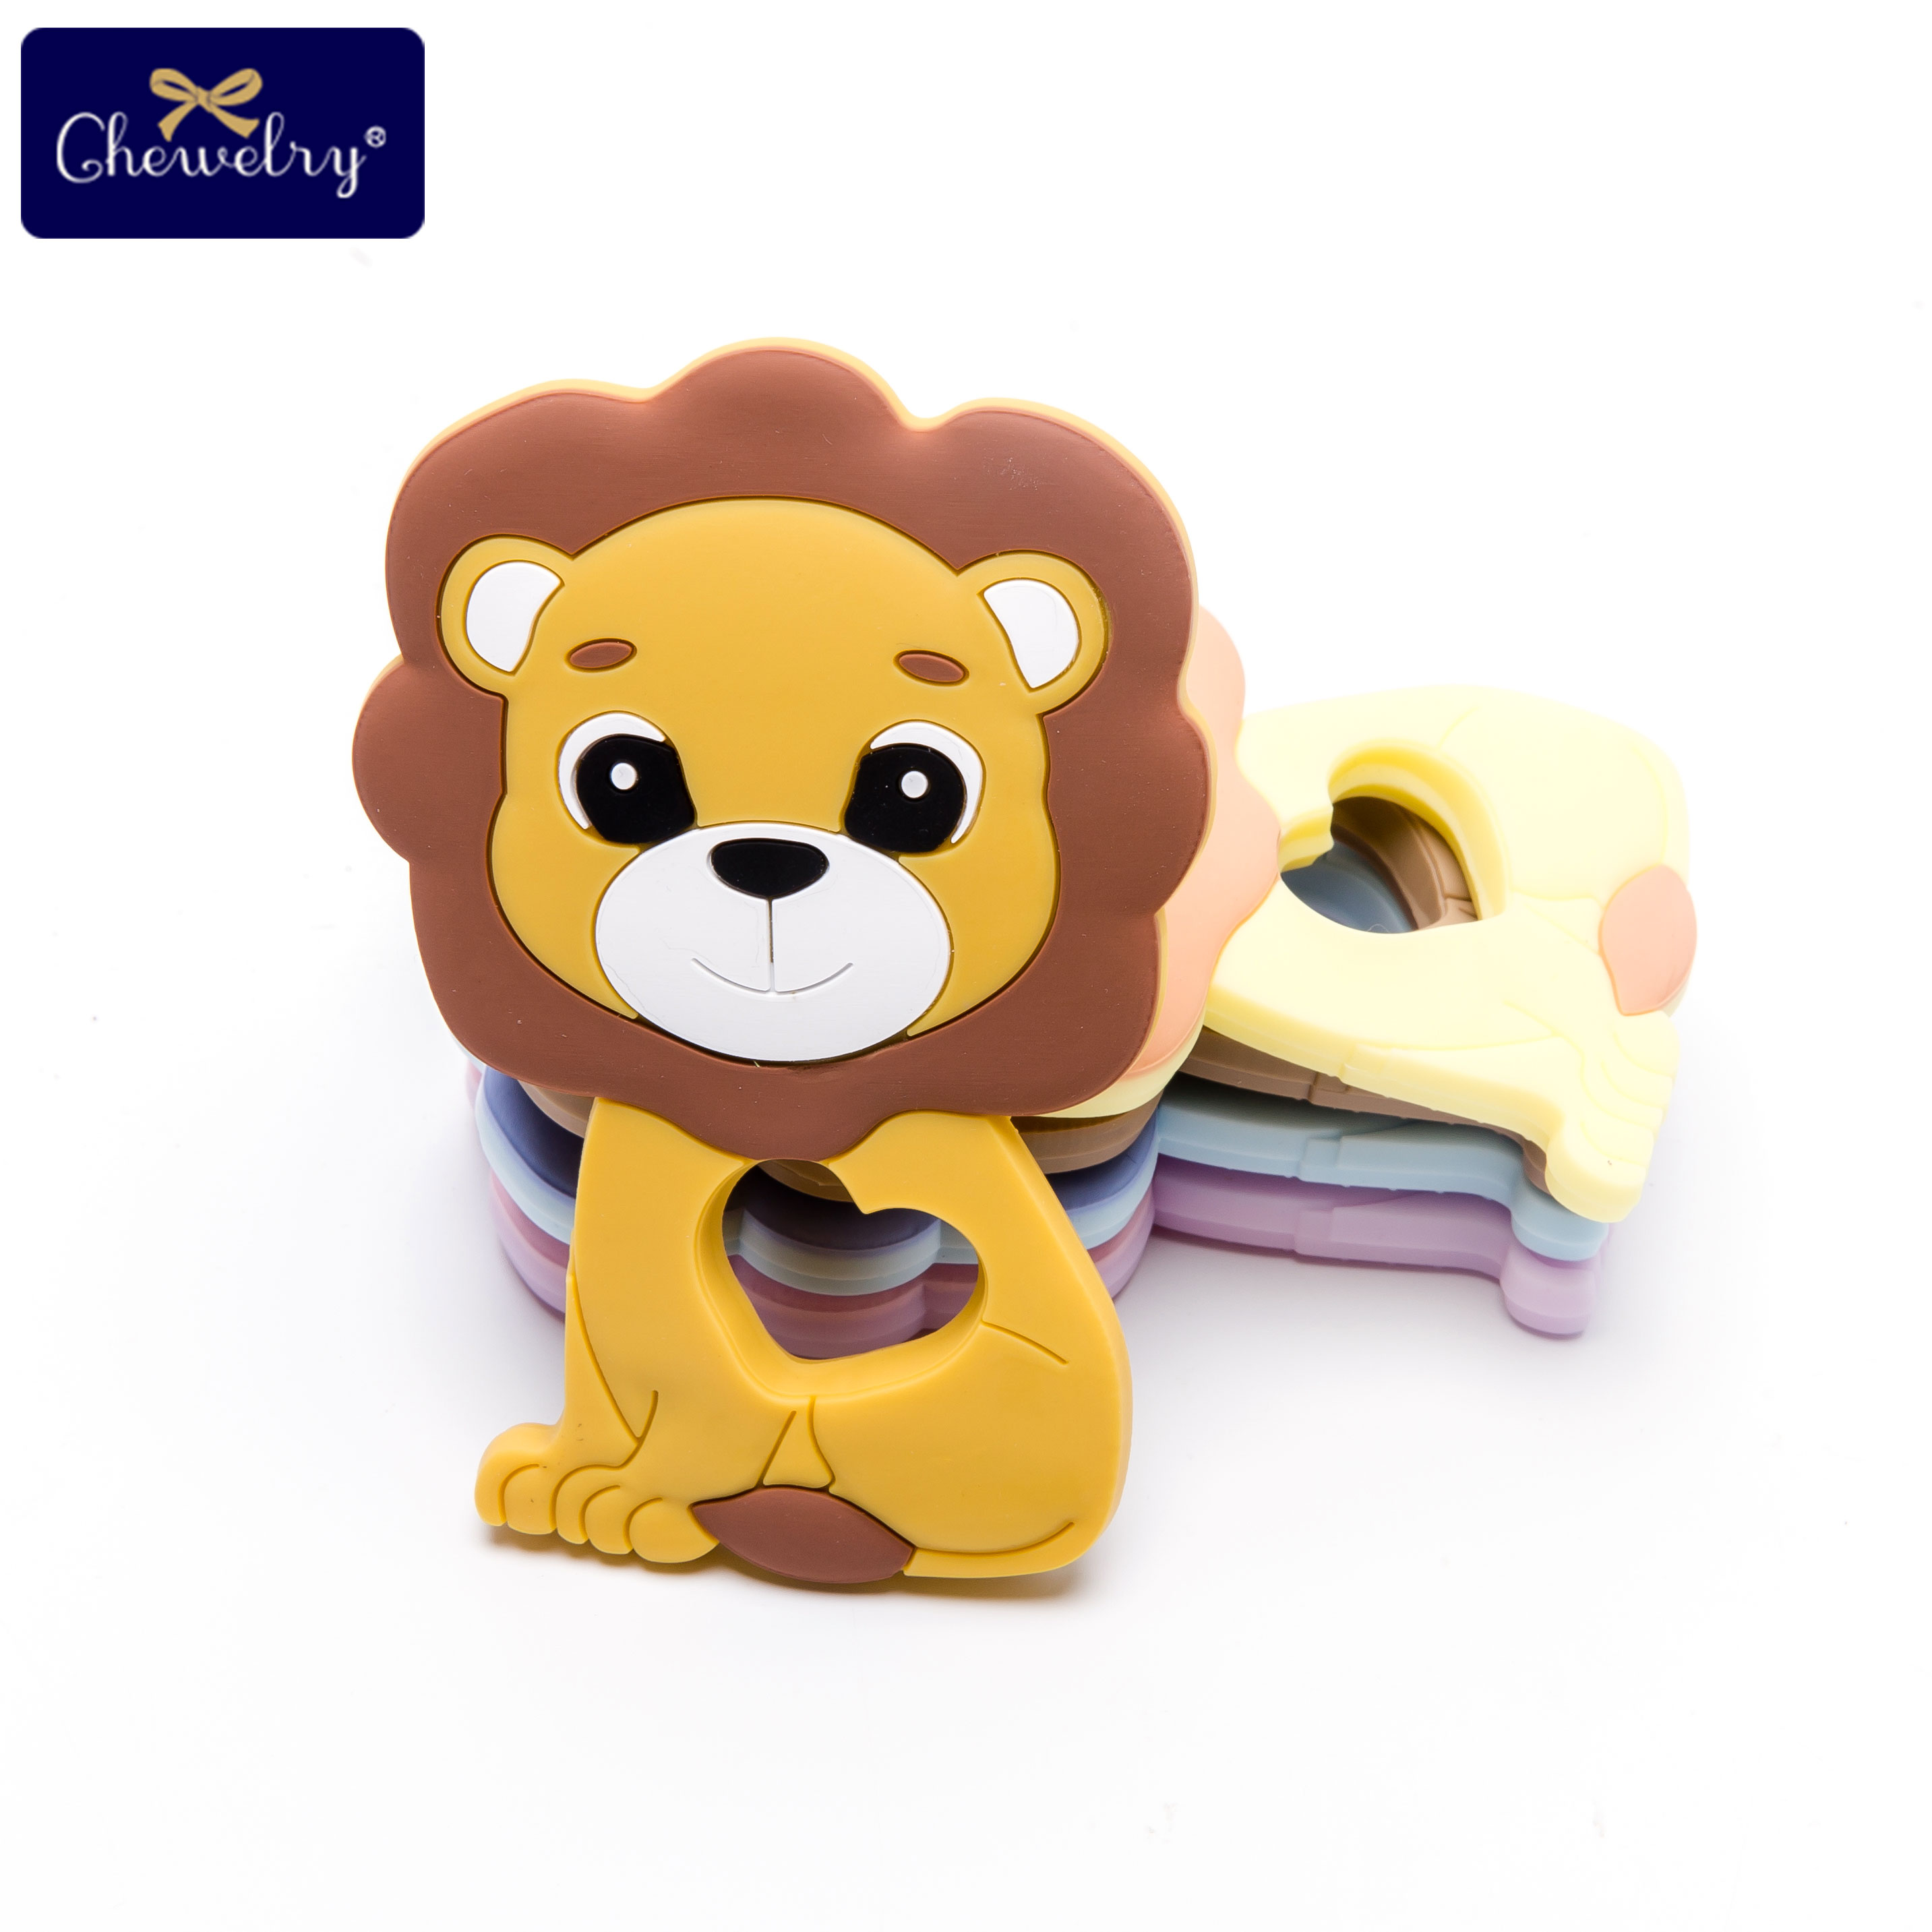 1pc Baby Silicone Teether Lion King Case Pendant Food Grade Perle Silicone Beads Teething Silicone Rodents Children'S Goods Toys